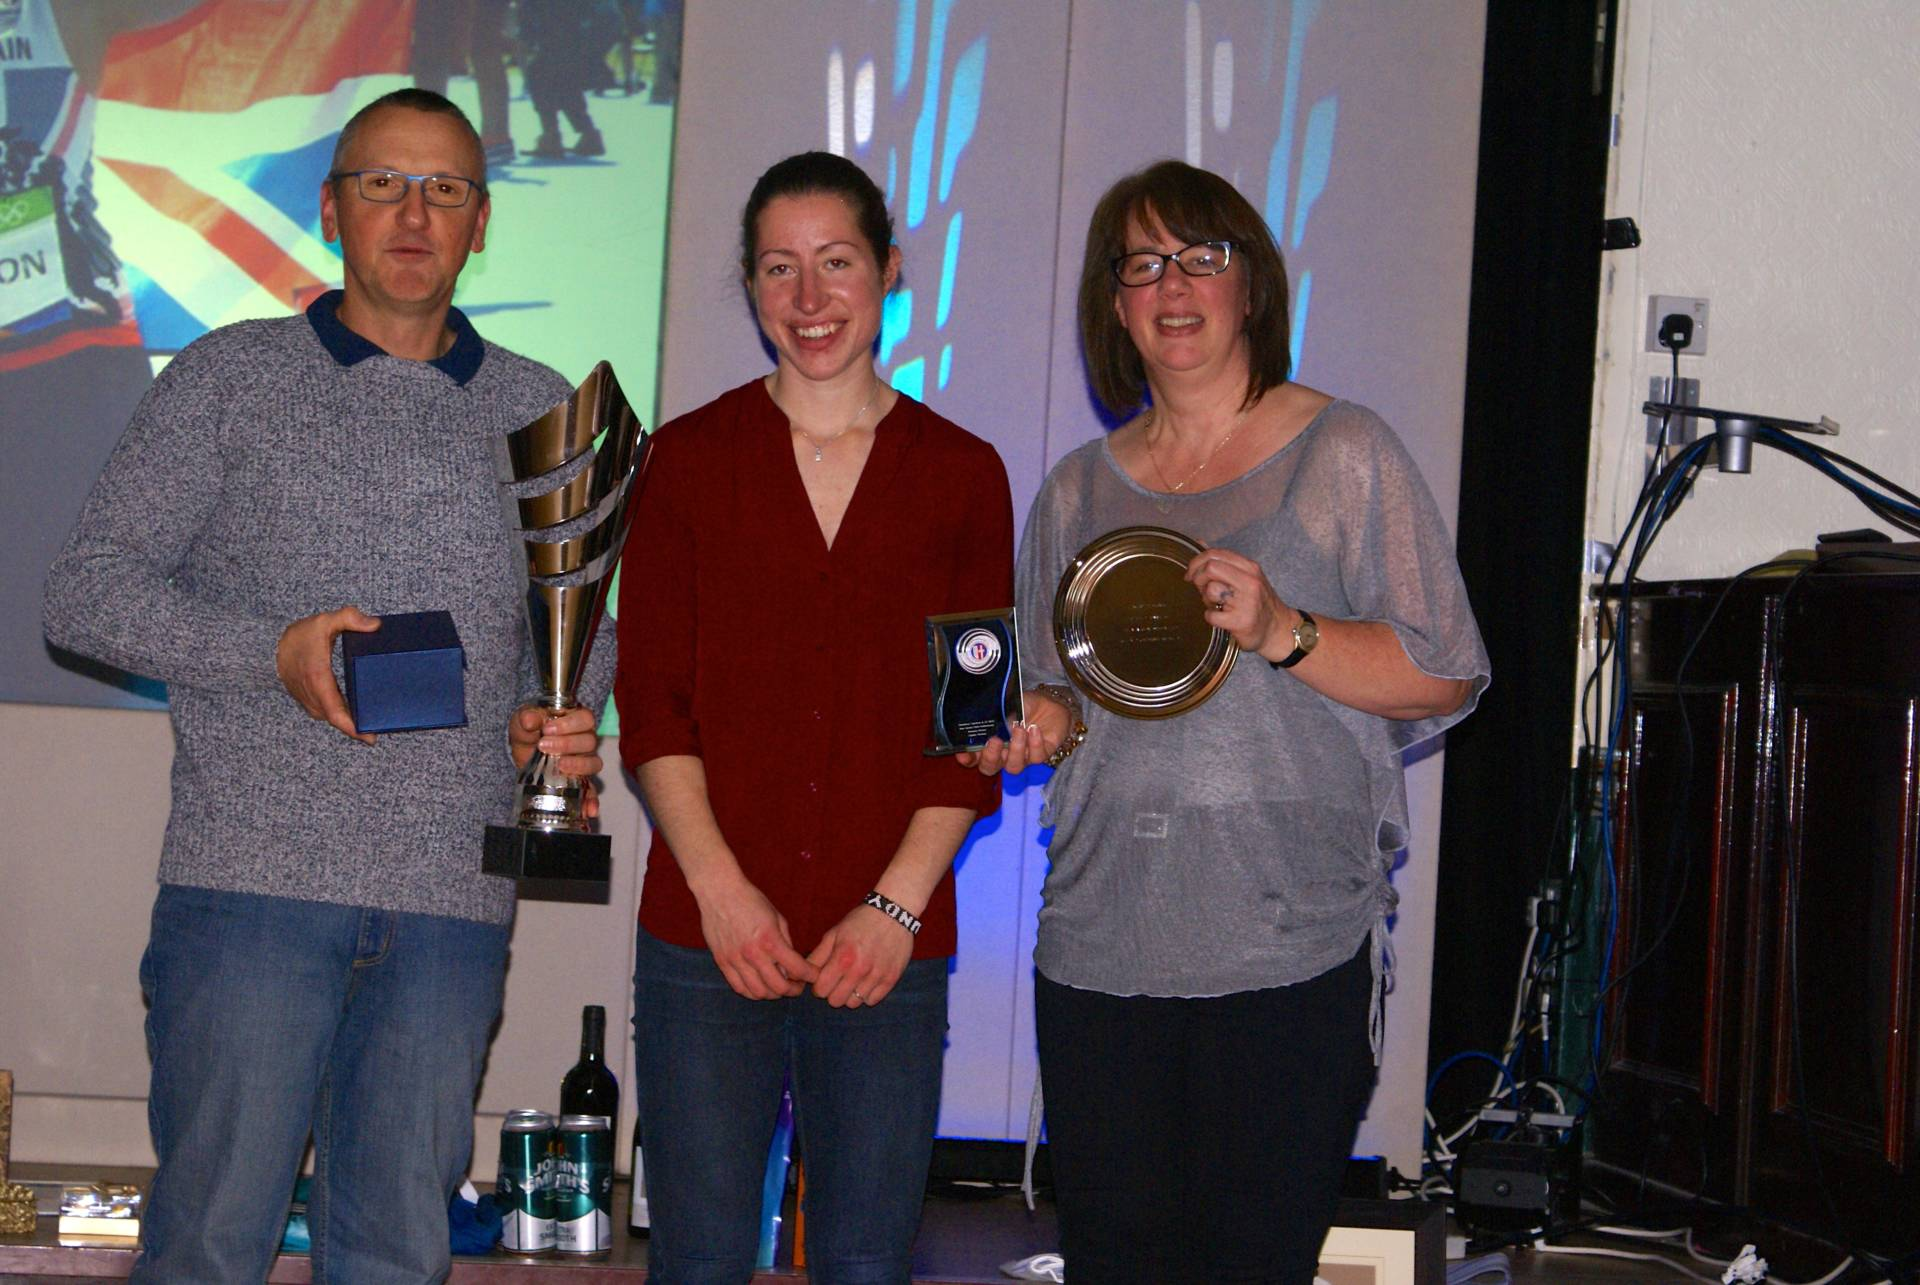 Celebrating Harriers athletes success at the Club's Annual Awards Night